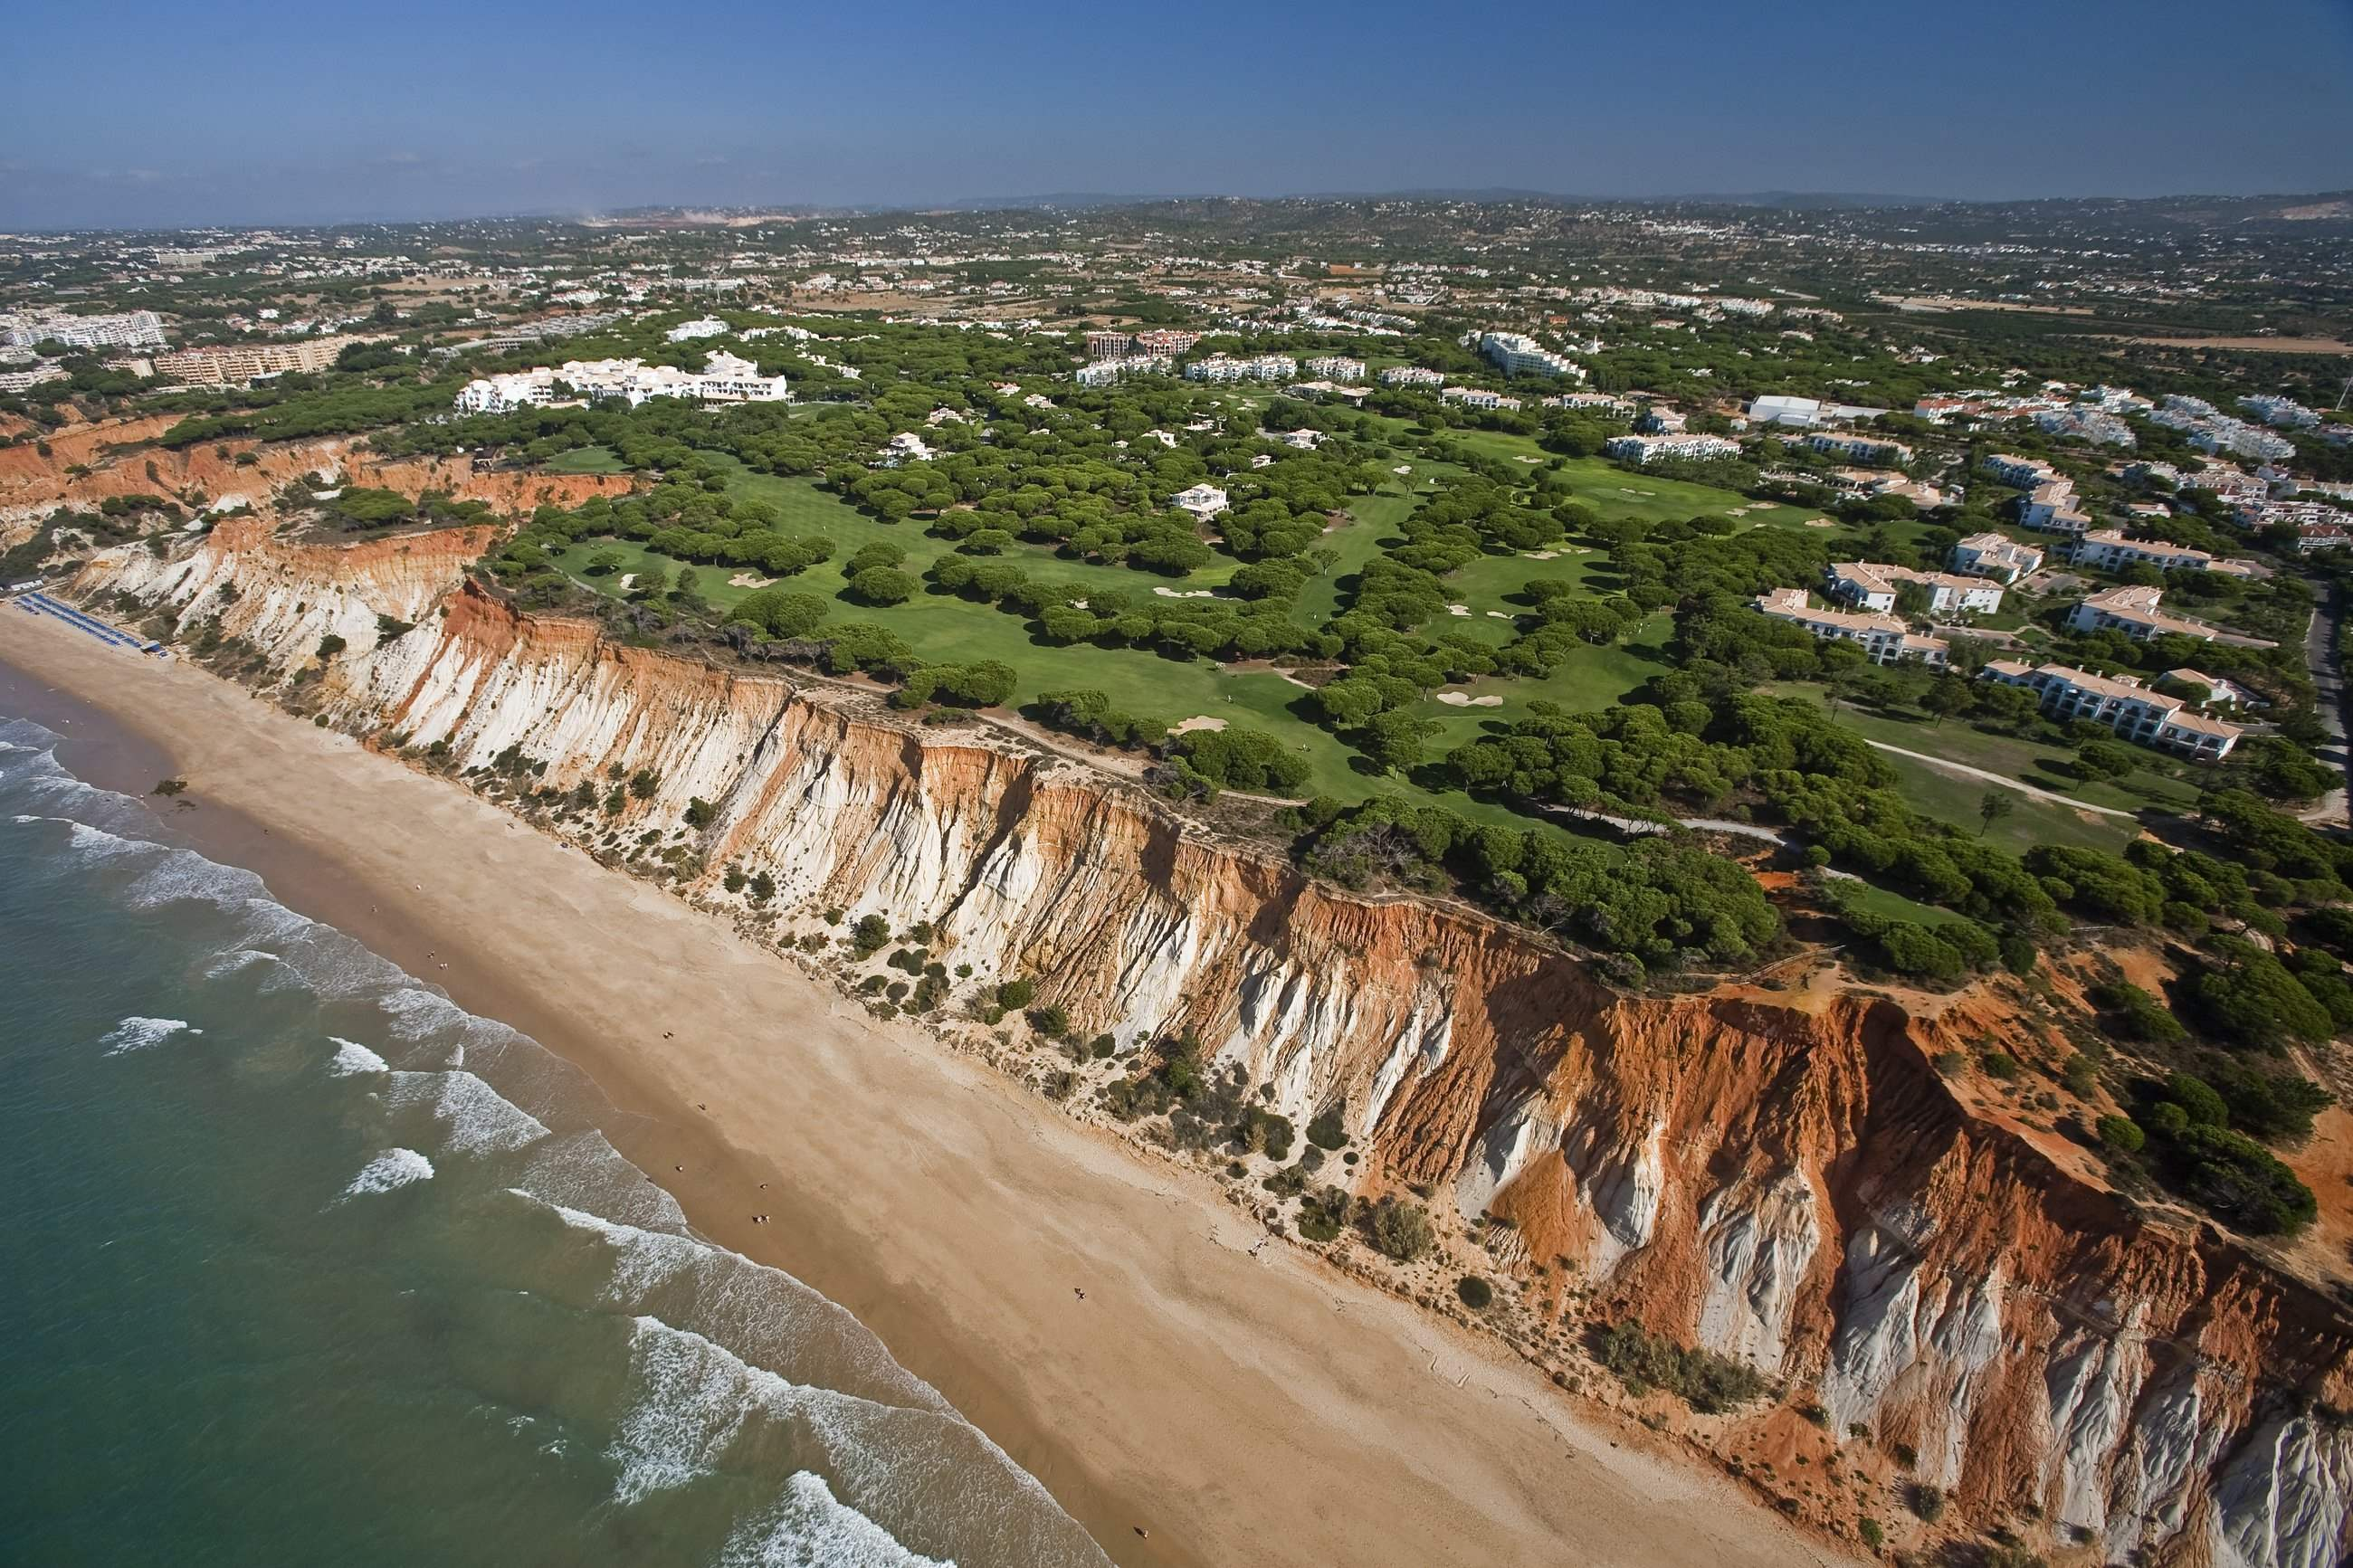 Pine Cliffs Villa Aurora, 4 bedroom villa in Pine Cliffs Resort, Algarve Photo #14